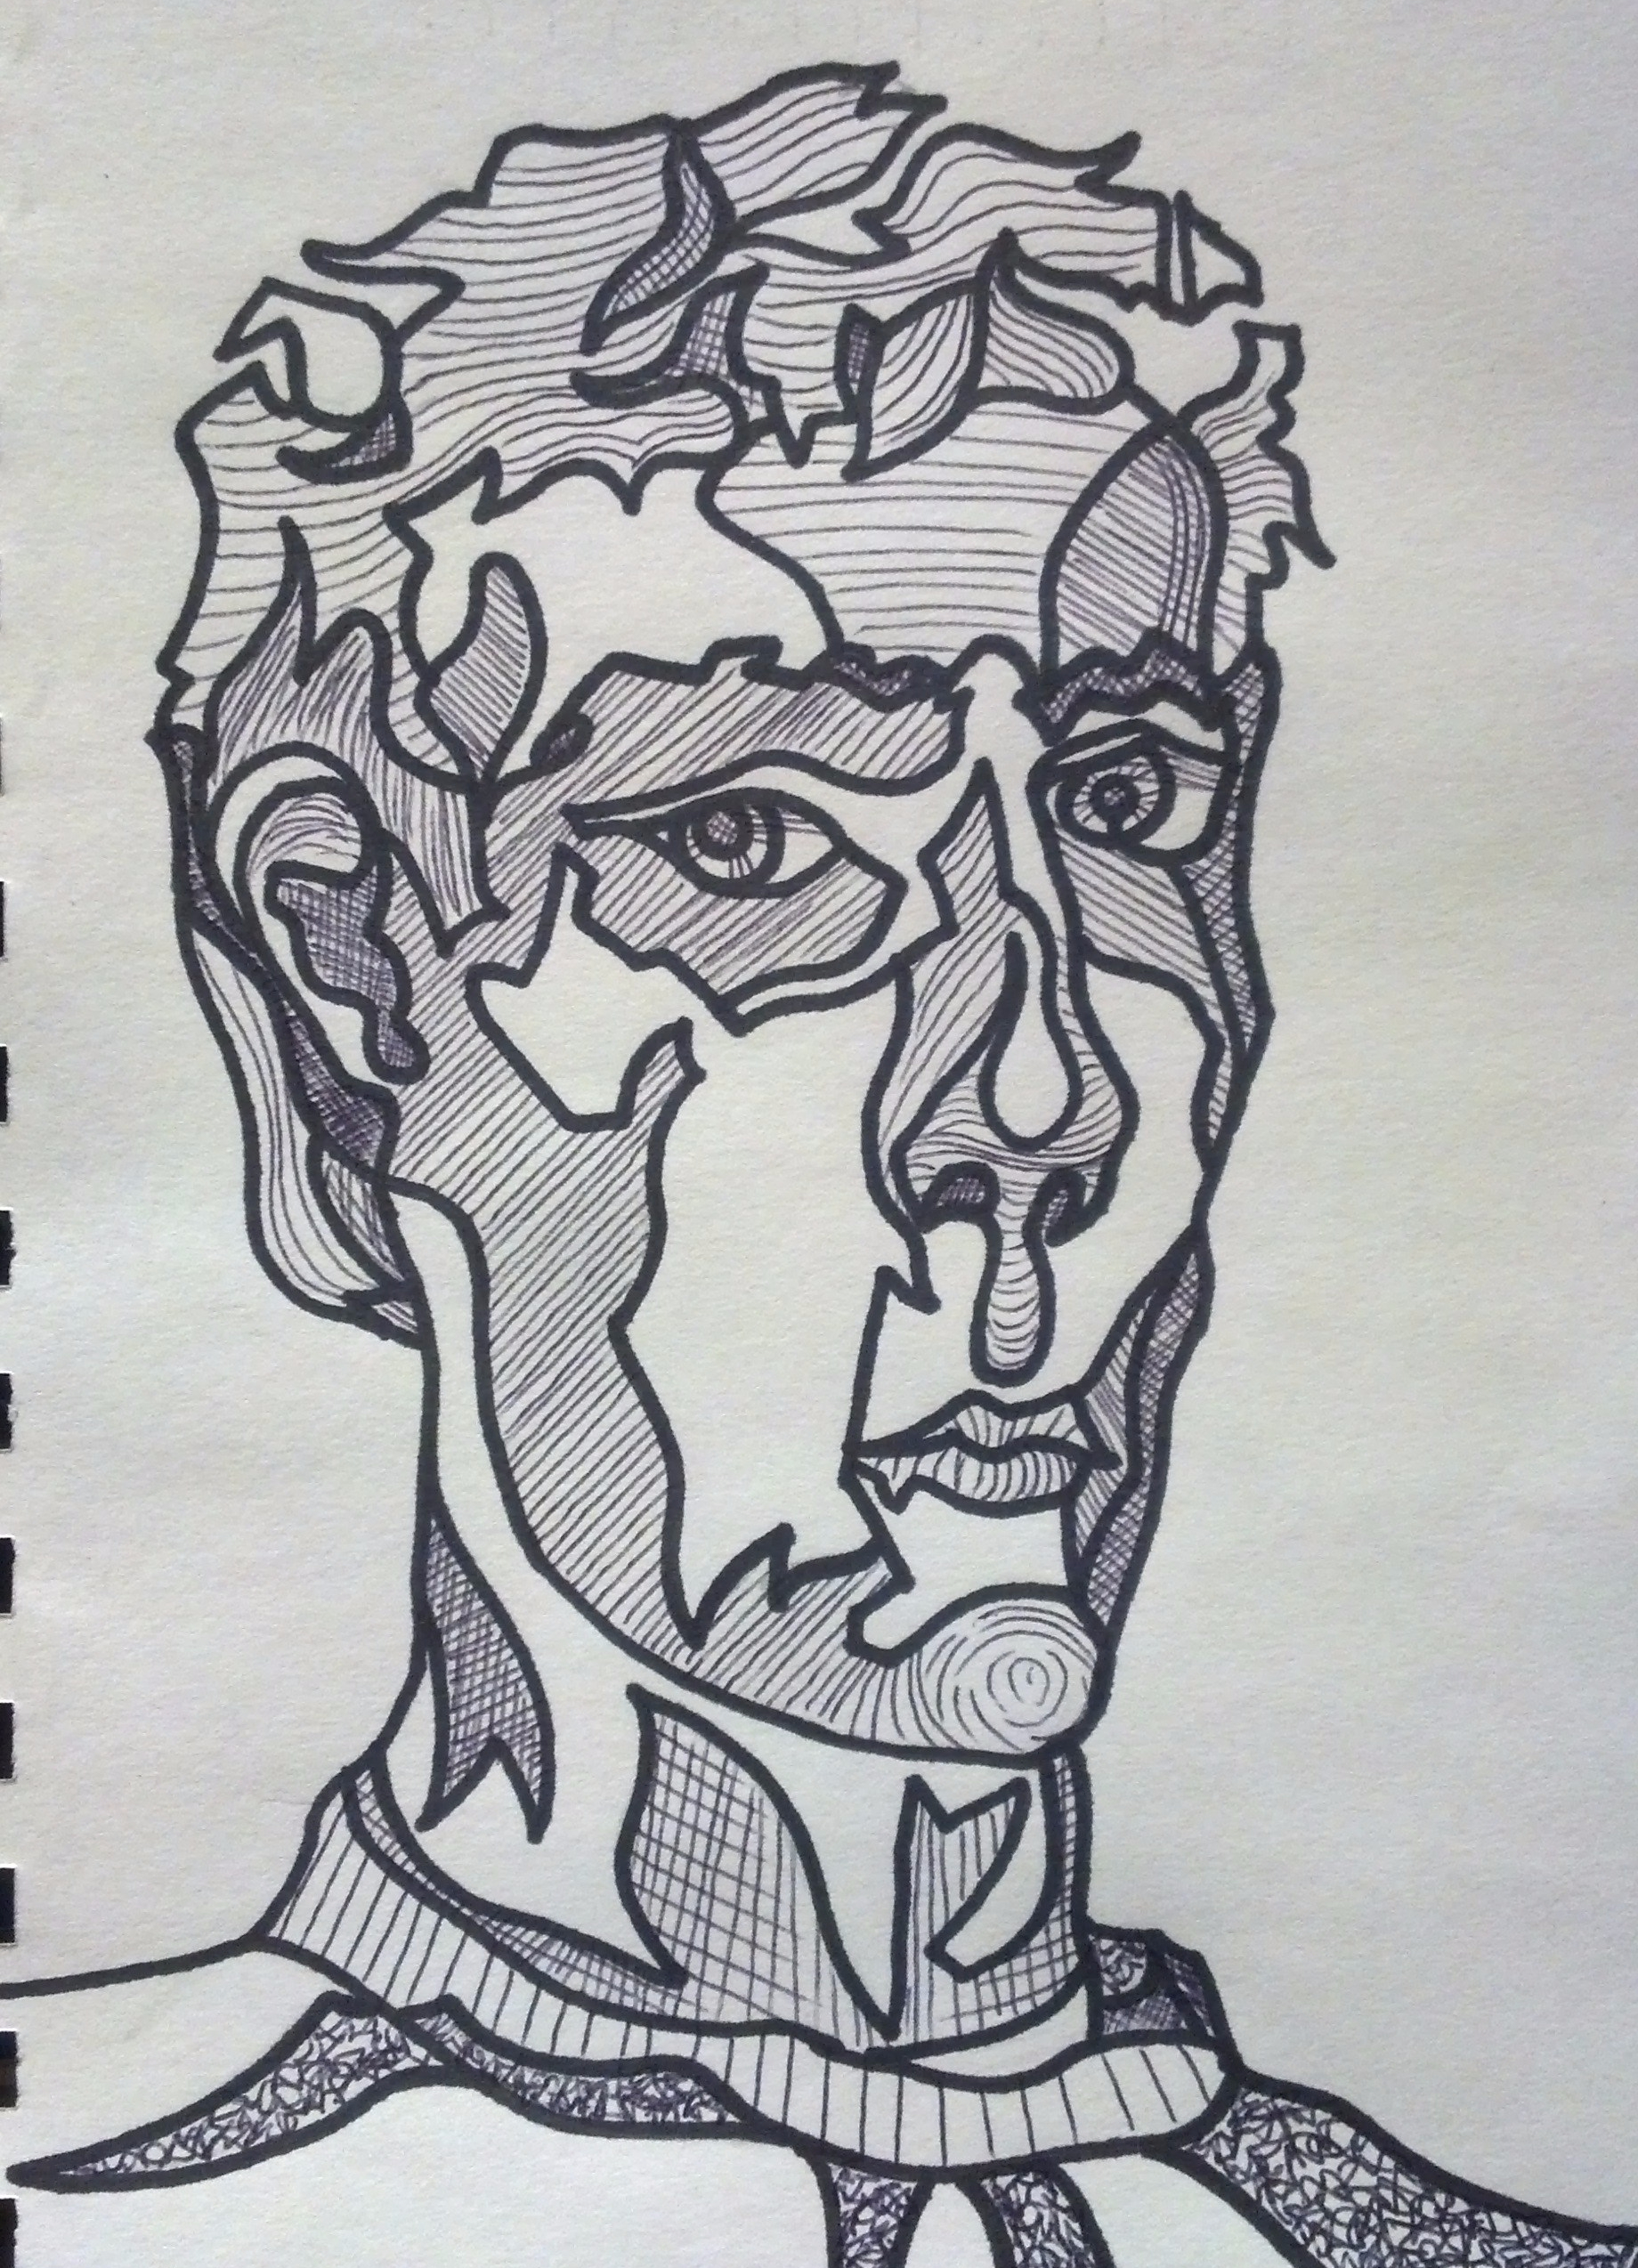 Contour Line Drawing In Art : Continuous line contour drawing u art with korb